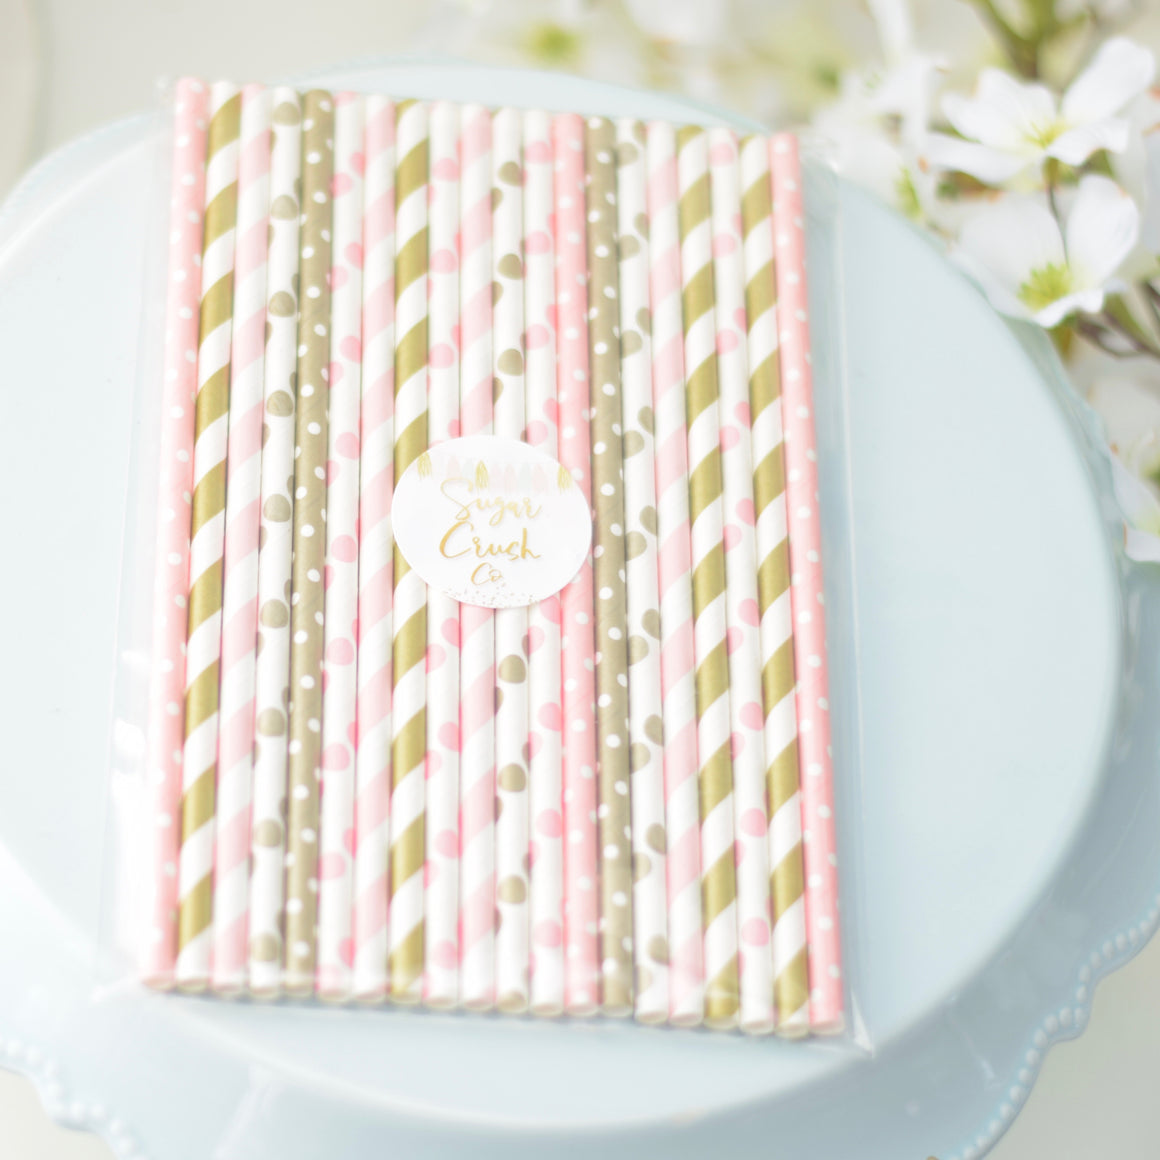 pink and gold straws on a cake stand